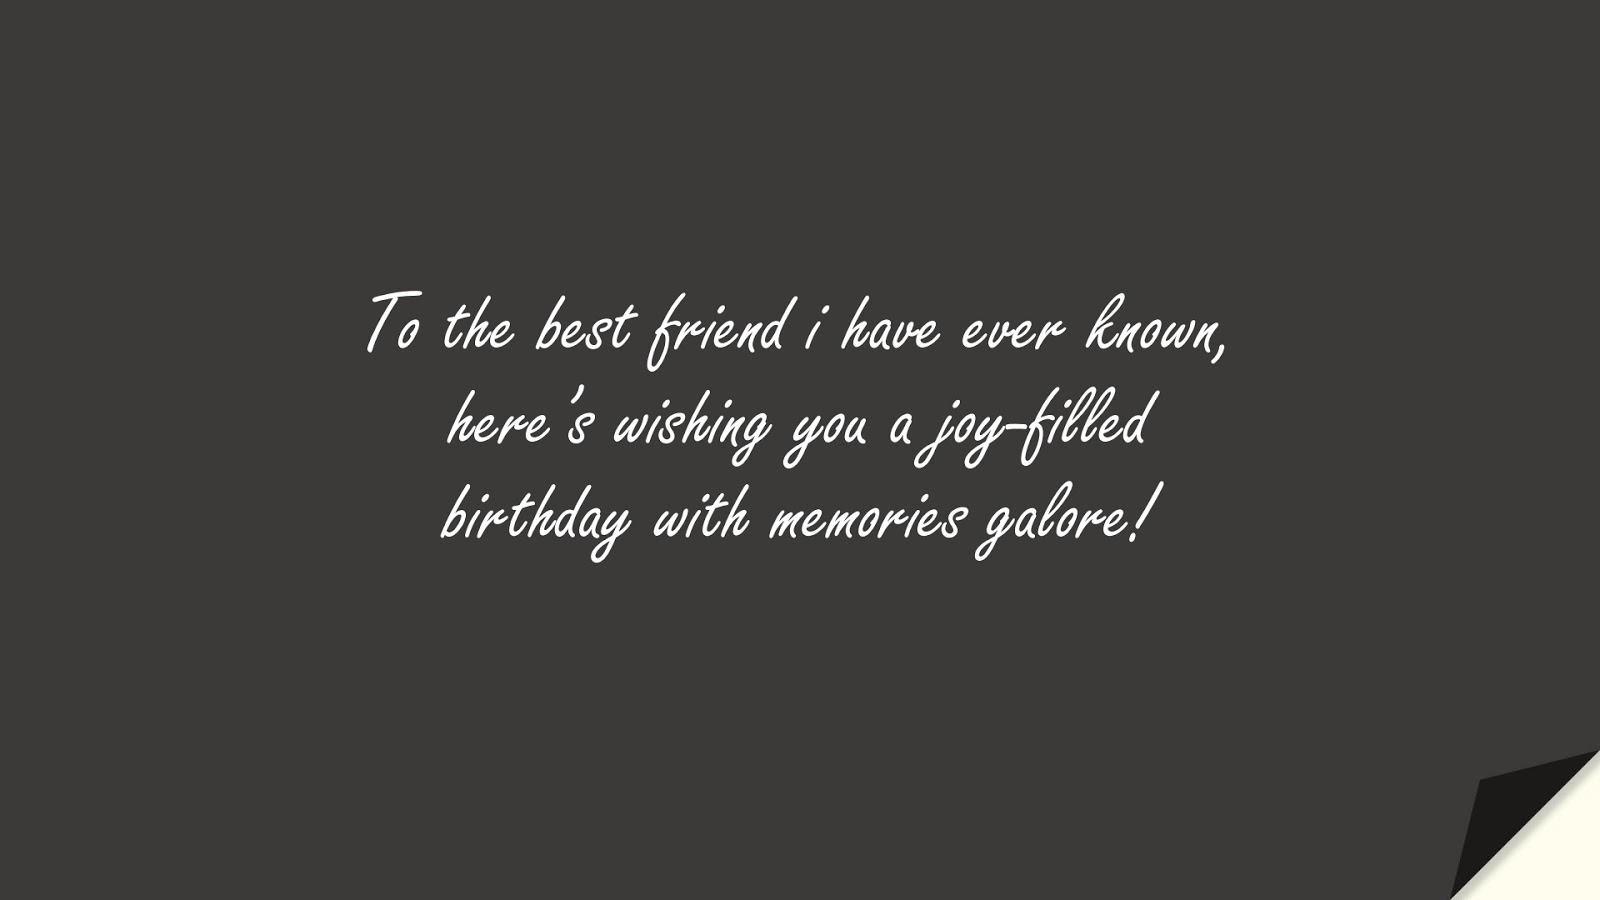 To the best friend i have ever known, here's wishing you a joy-filled birthday with memories galore!FALSE